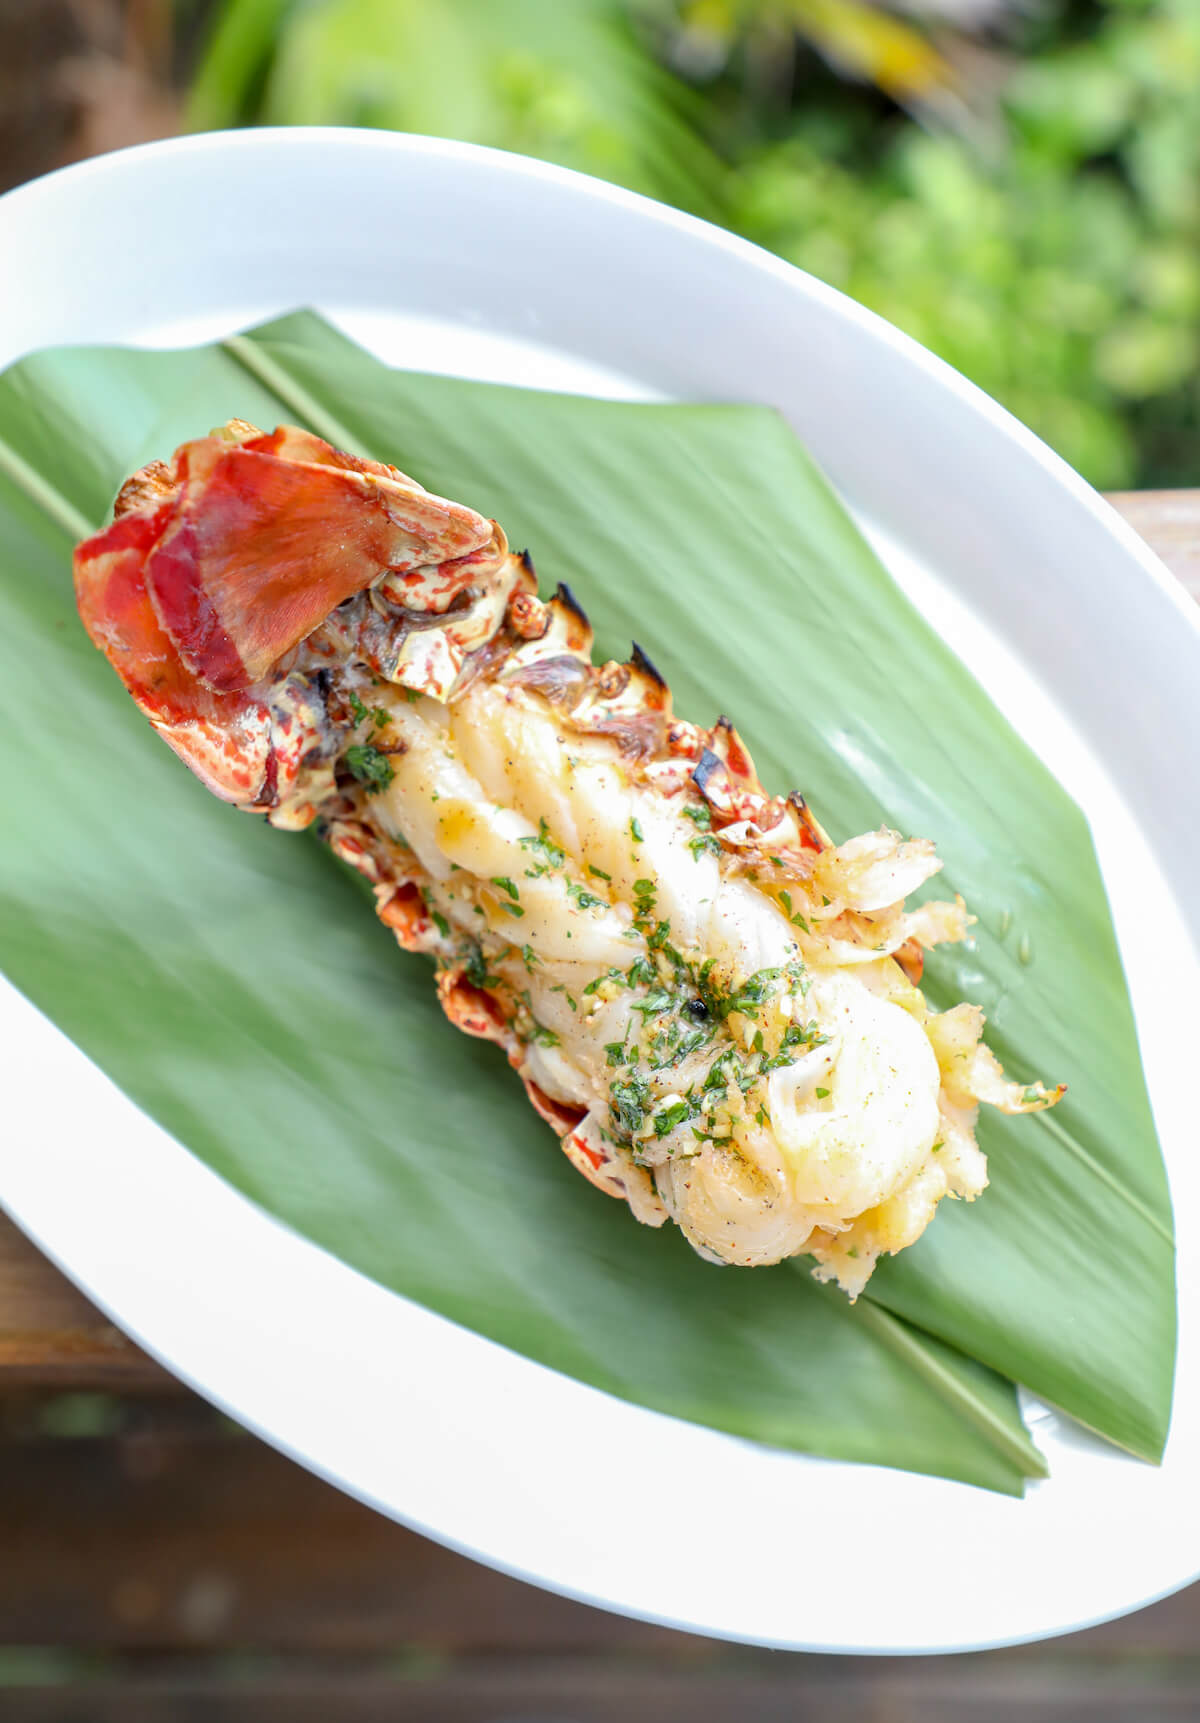 Keto Grilled Lobster Tails with Creole Butter - the perfect summer party food!  You can also substitute shrimp or even chicken! Low carb and Paleo.